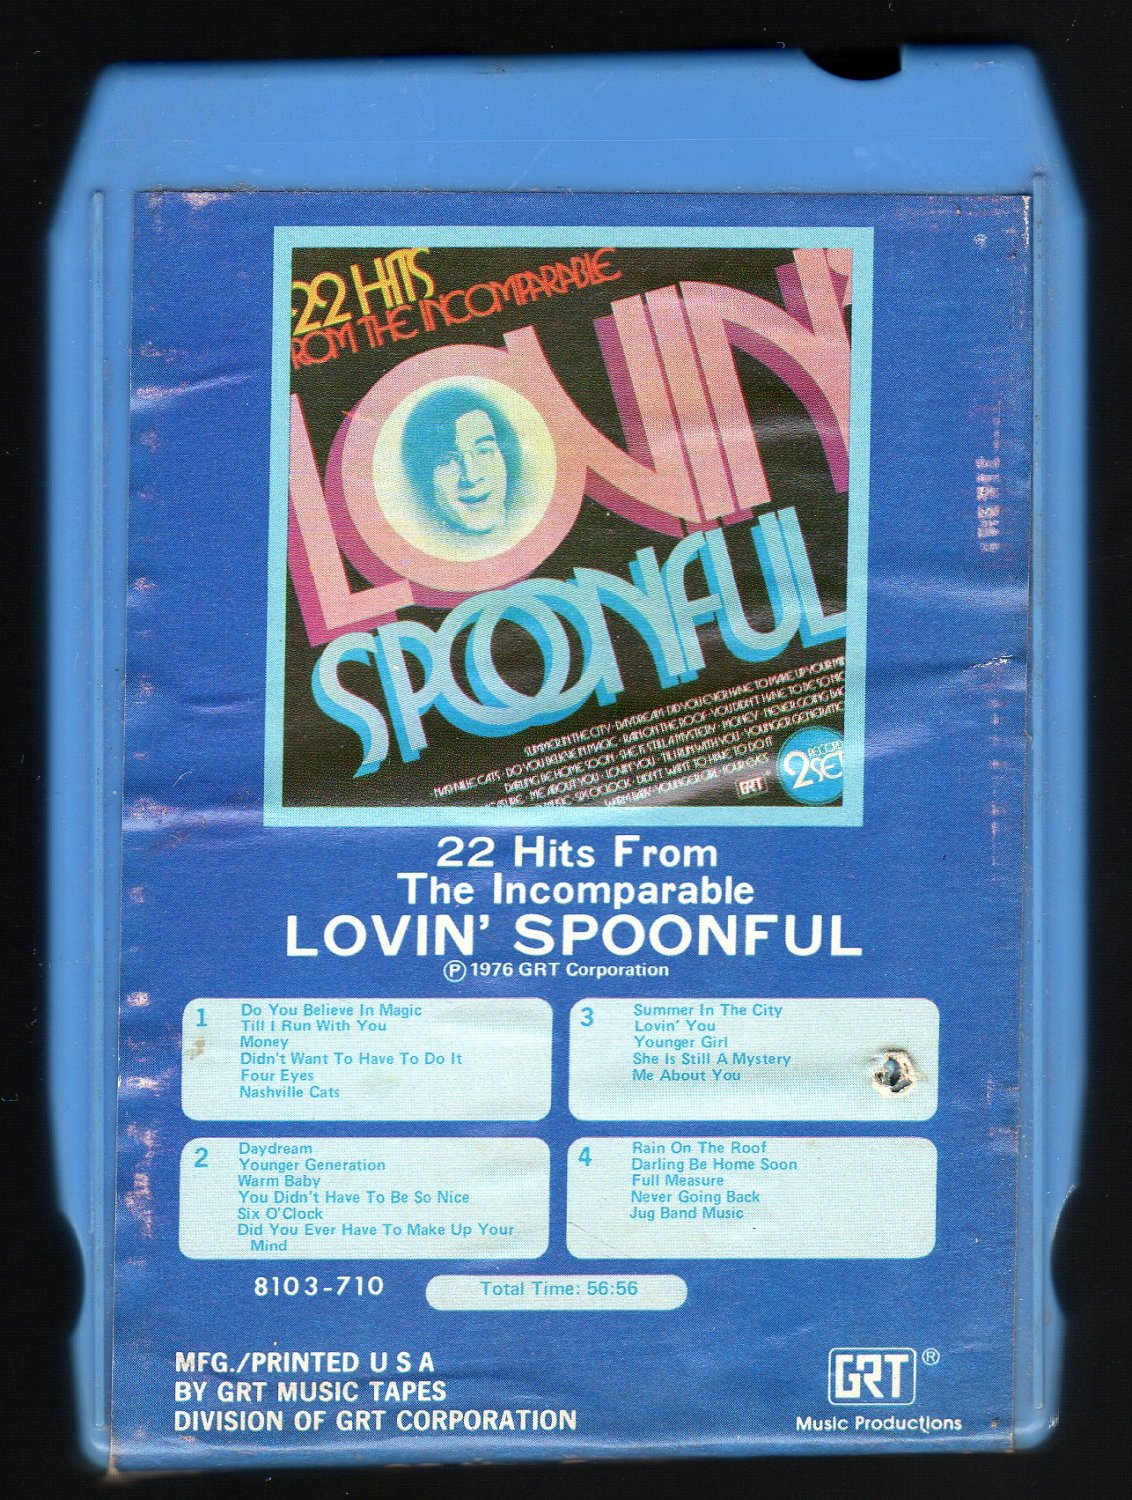 The Lovin' Spoonful - 22 Hits From The Incomparable Lovin' Spoonful A32 8-TRACK TAPE